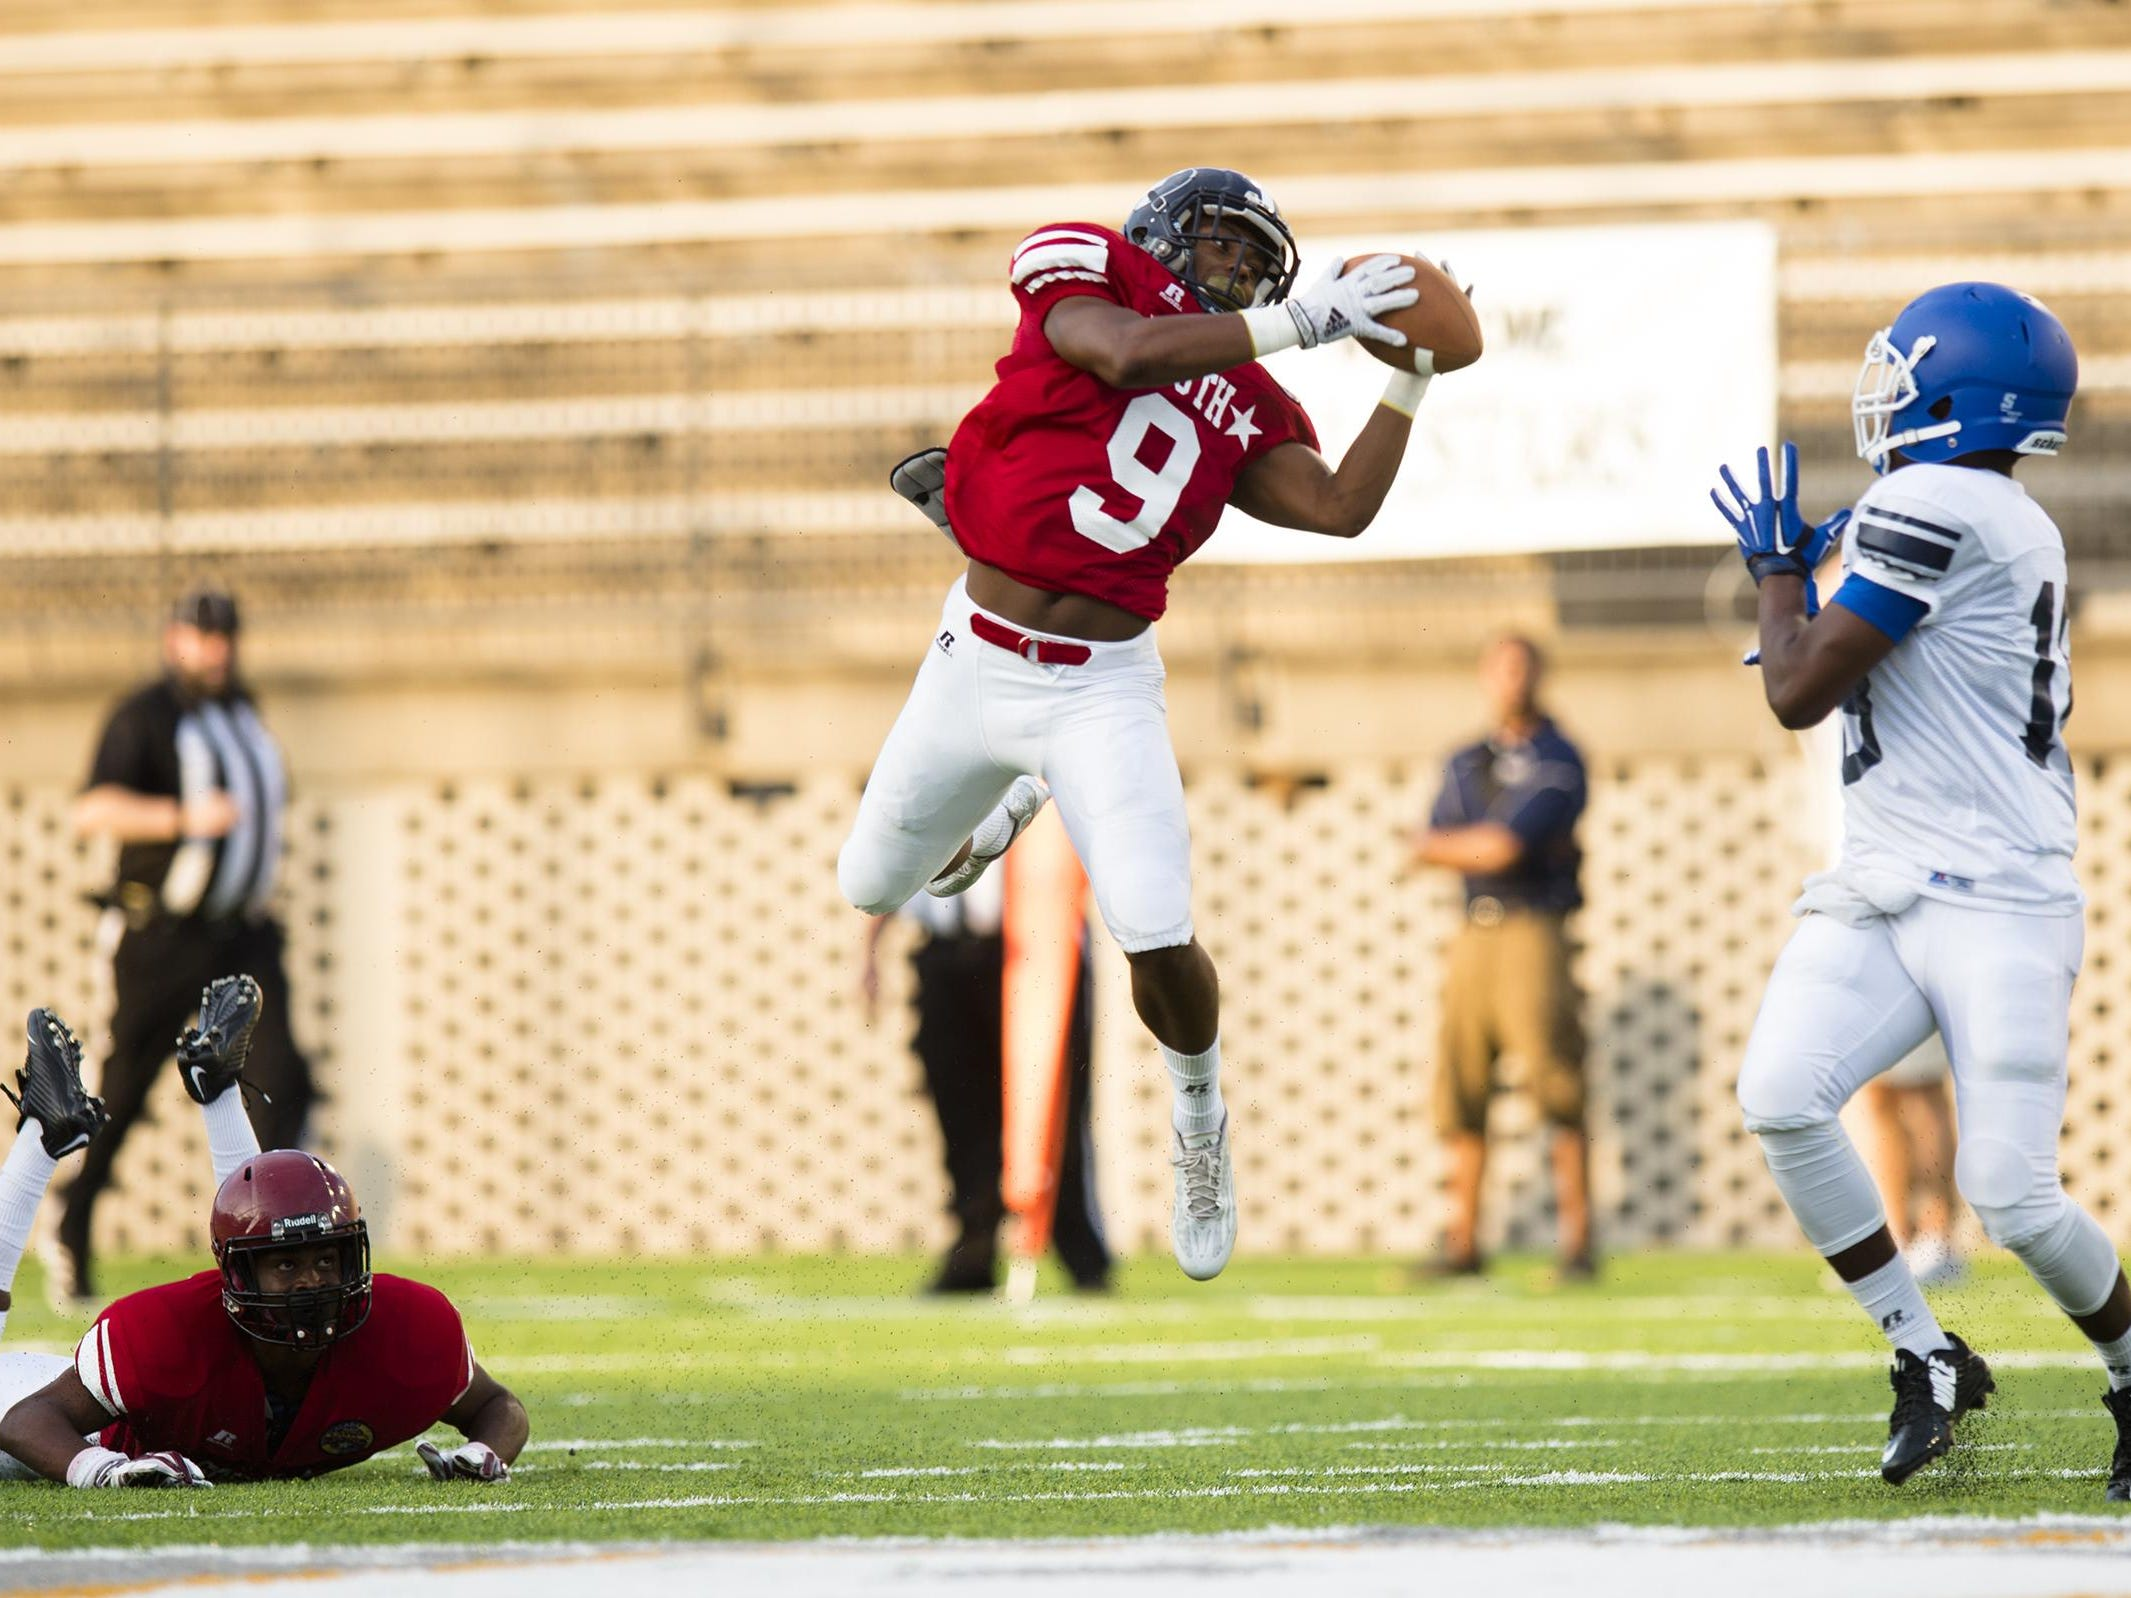 South All-Star Wendell Harris of Foley intercepts a pass intended for North All-Star Eddie Williams of Tuscaloosa County during the AHSAA North vs. South All Star game on Friday, July 17, 2015, in Montgomery, Ala.